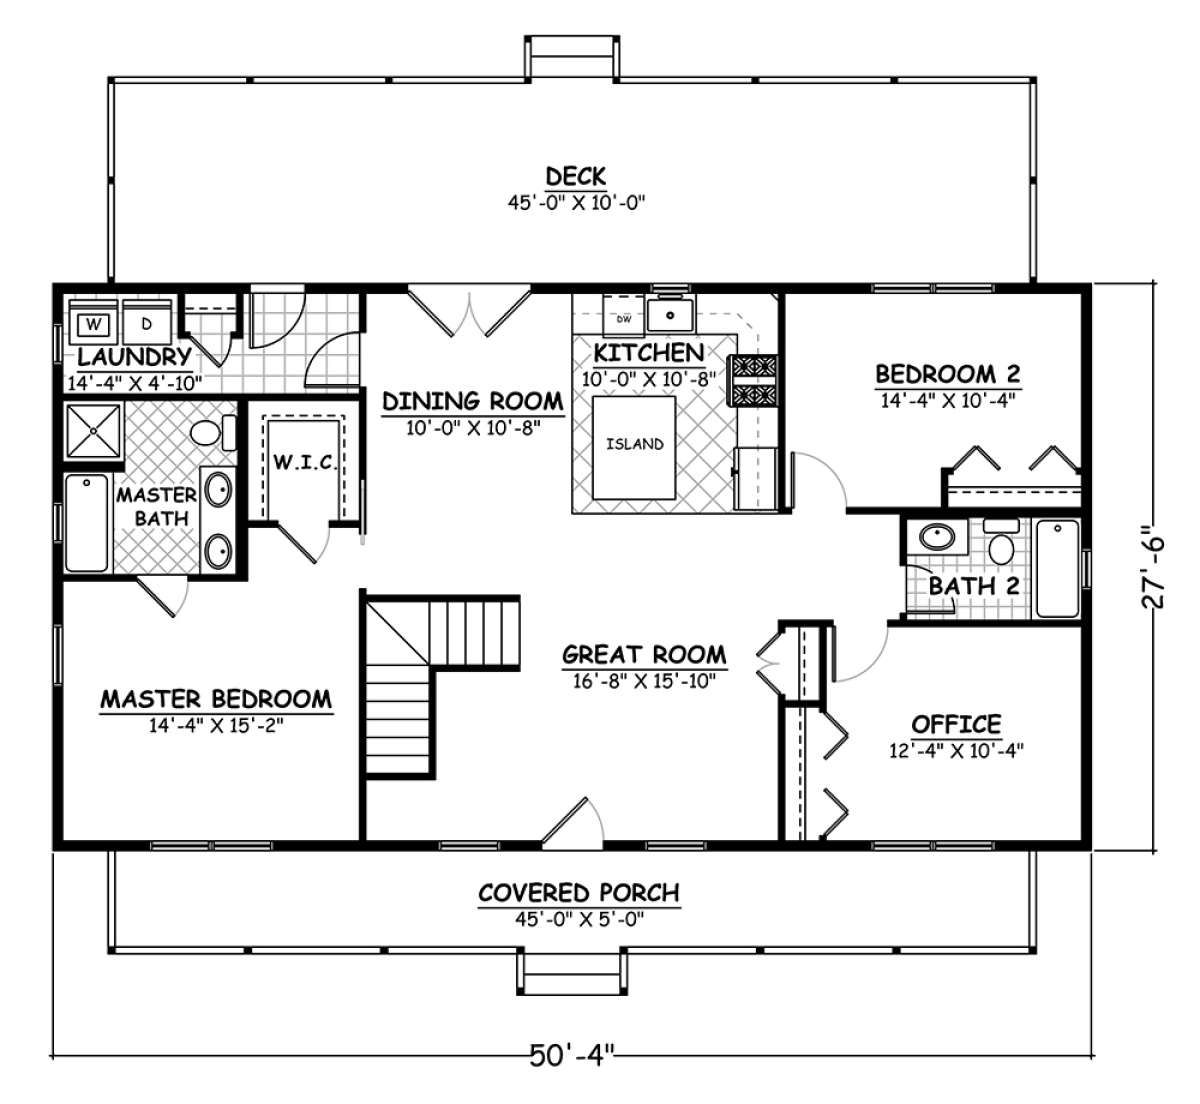 House Plan 526 00046 Country Plan 1 955 Square Feet 4 Bedrooms 3 Bathrooms In 2021 Small House Plans Dream House Plans Pole Barn House Plans